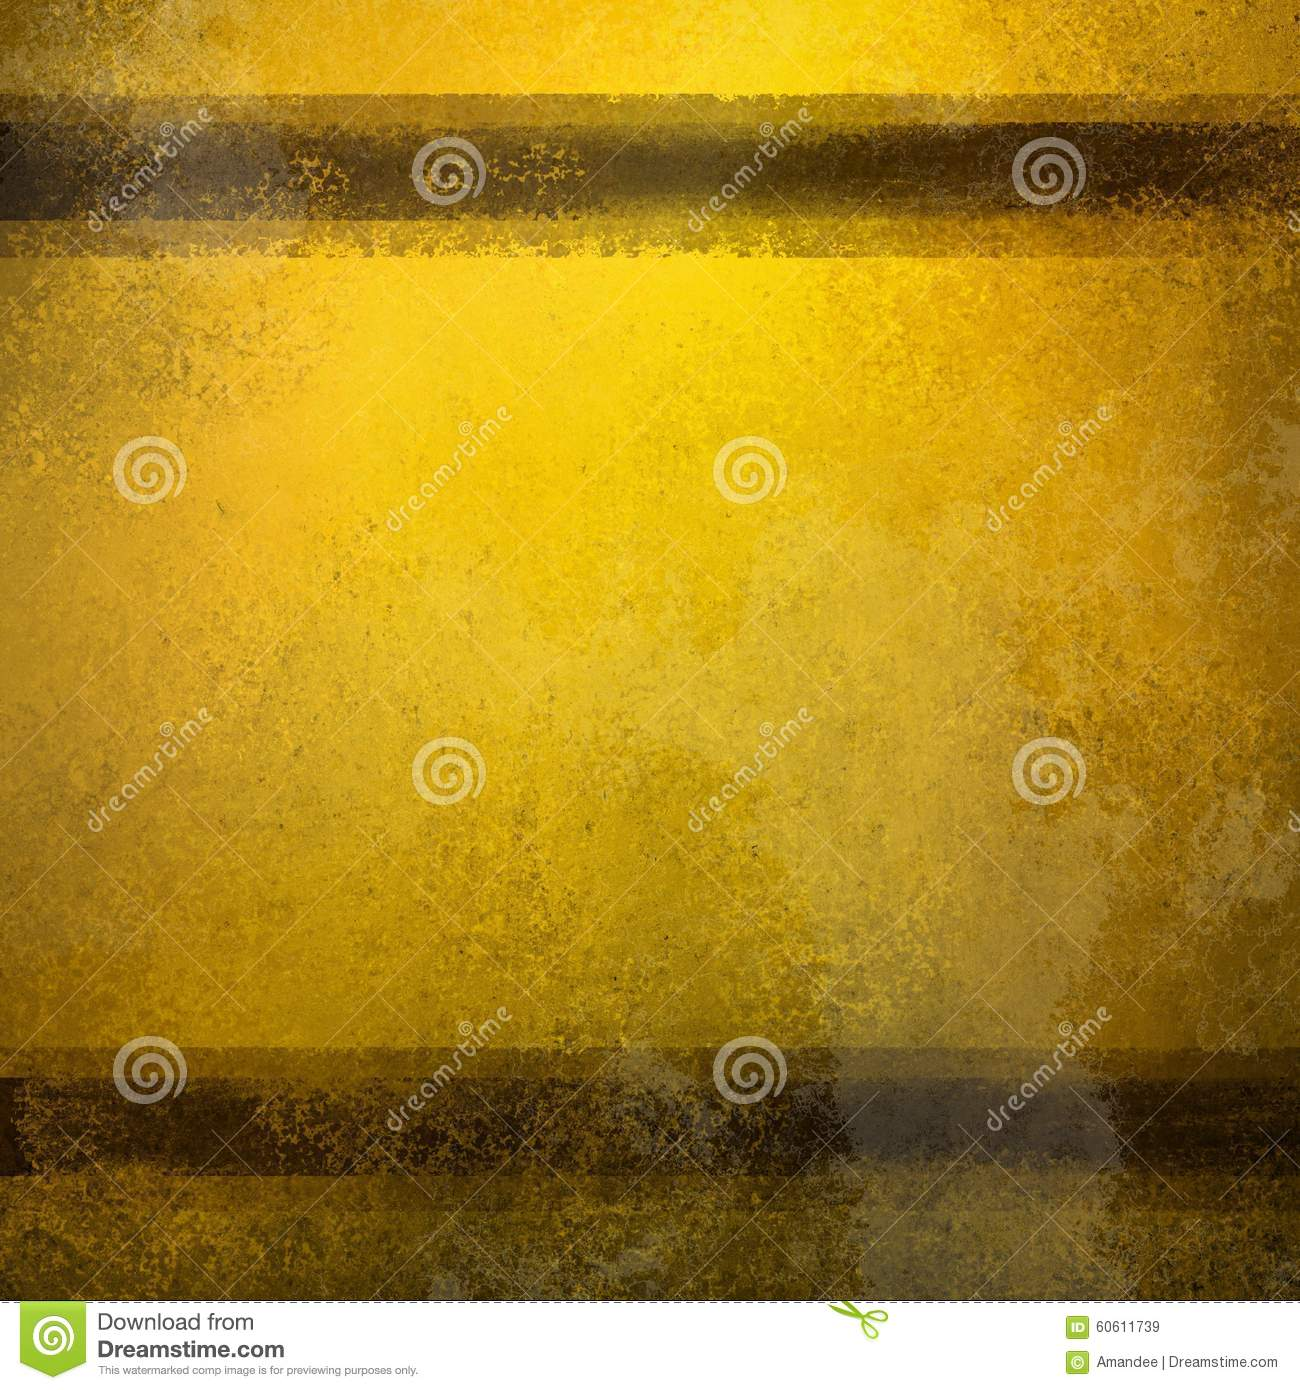 Vintage gold background with brown stripes and distressed old faded texture and stains